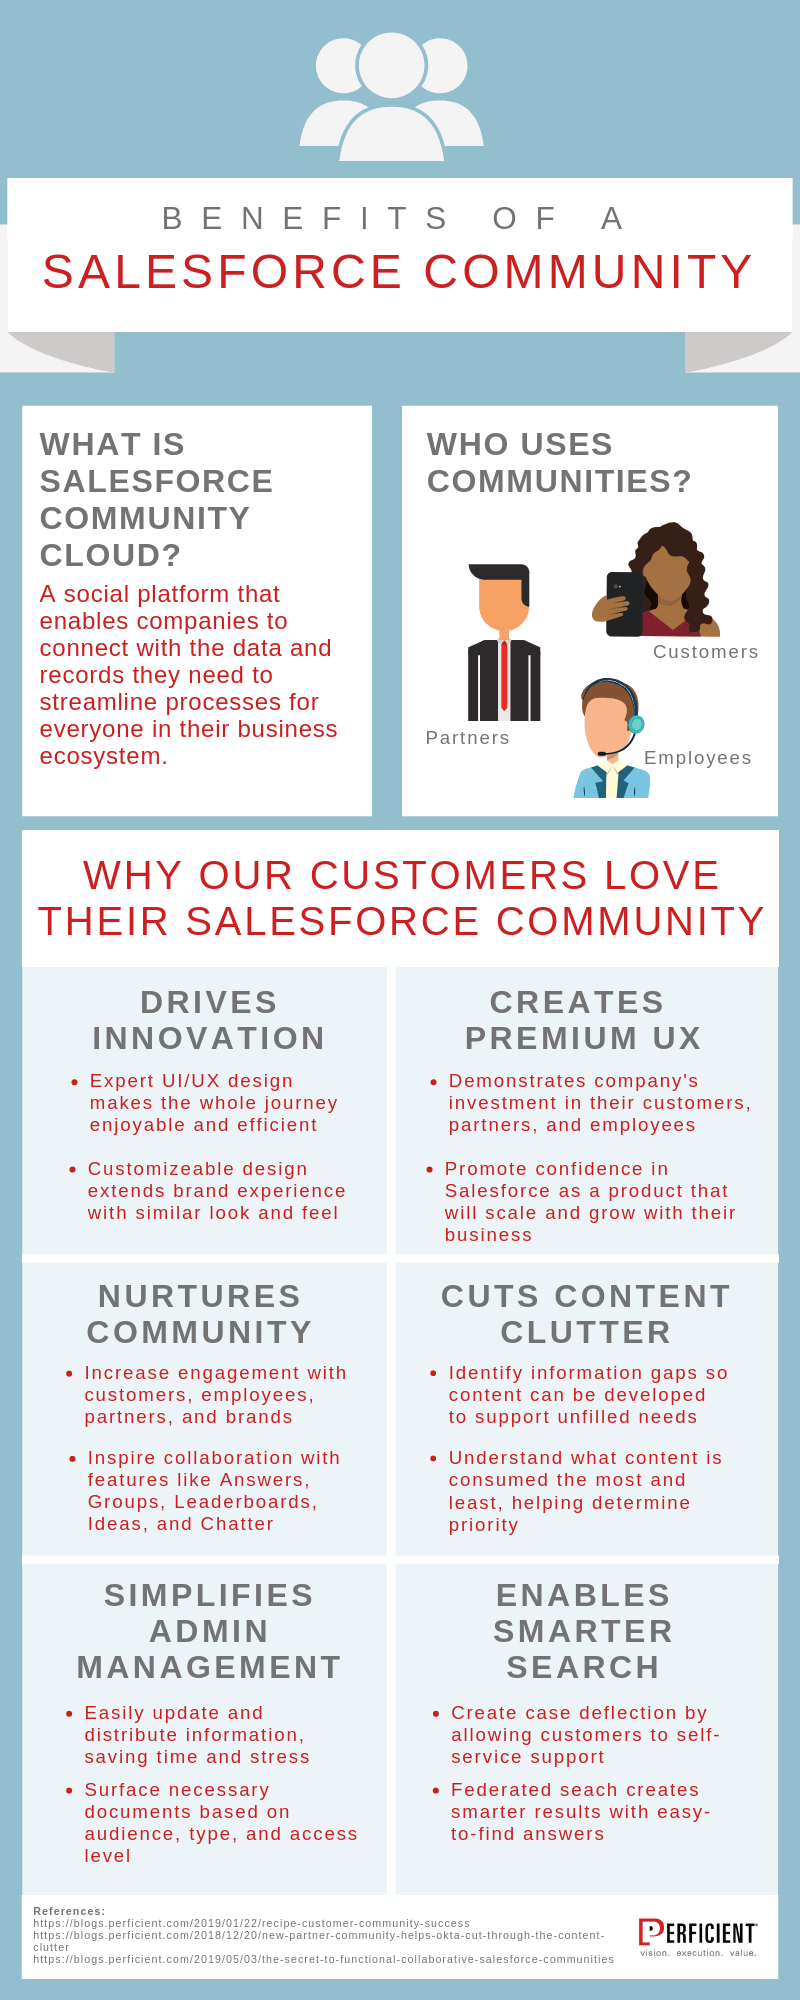 benefits of a salesforce community by perficient